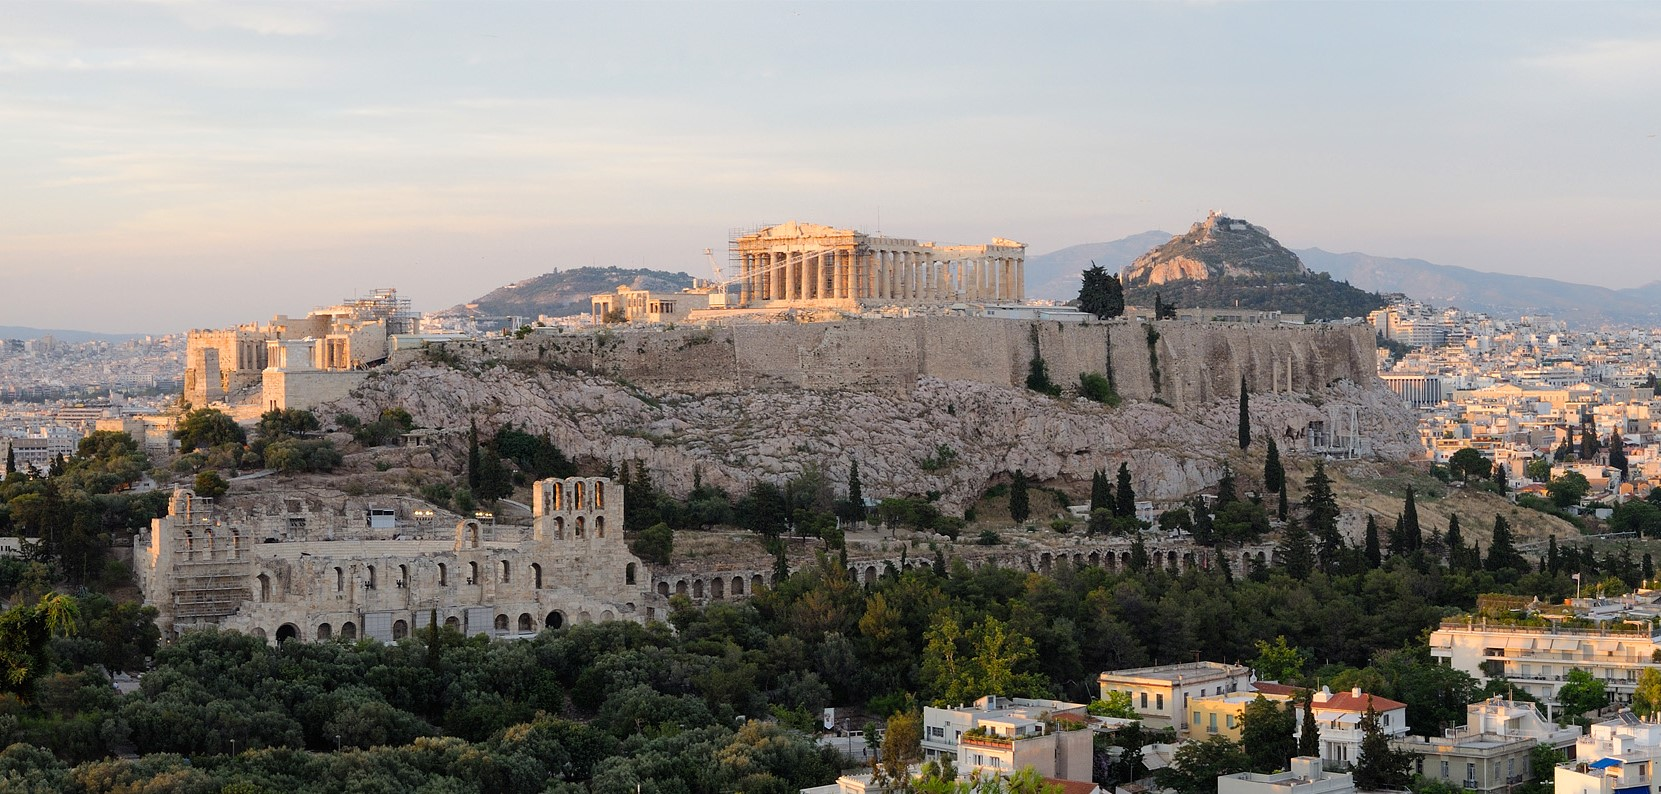 Vacations in Greece Akropolis- Christophe Meneboeuf, View of the Acropolis Athens (pixinn.net), CC BY-SA 3.0